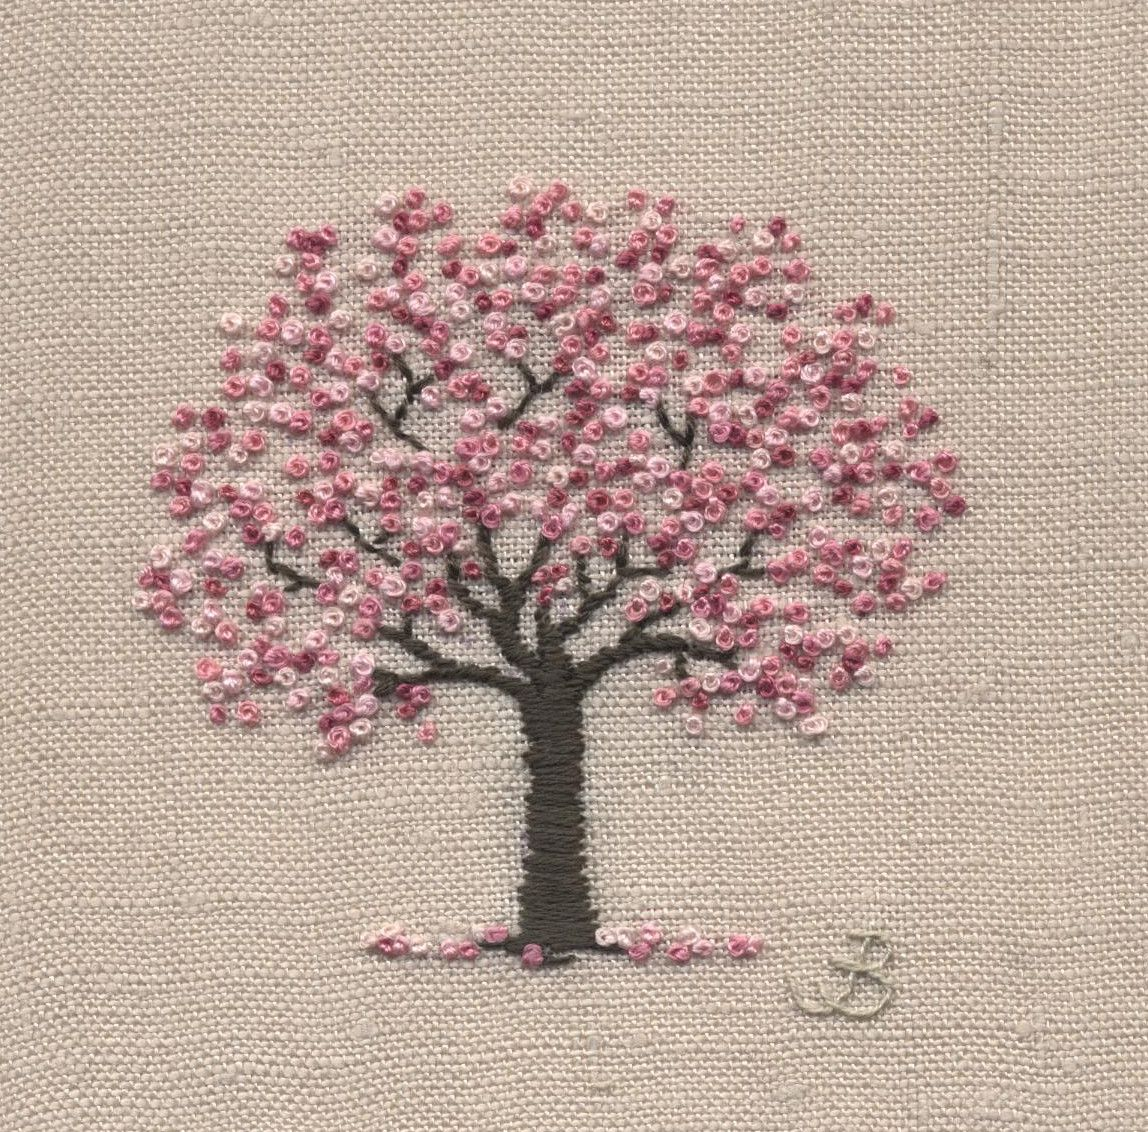 Jo Butcher Embroidery Artist Cherry Blossom Simple Embroidery Crewel Embroidery Kits Hardanger Embroidery